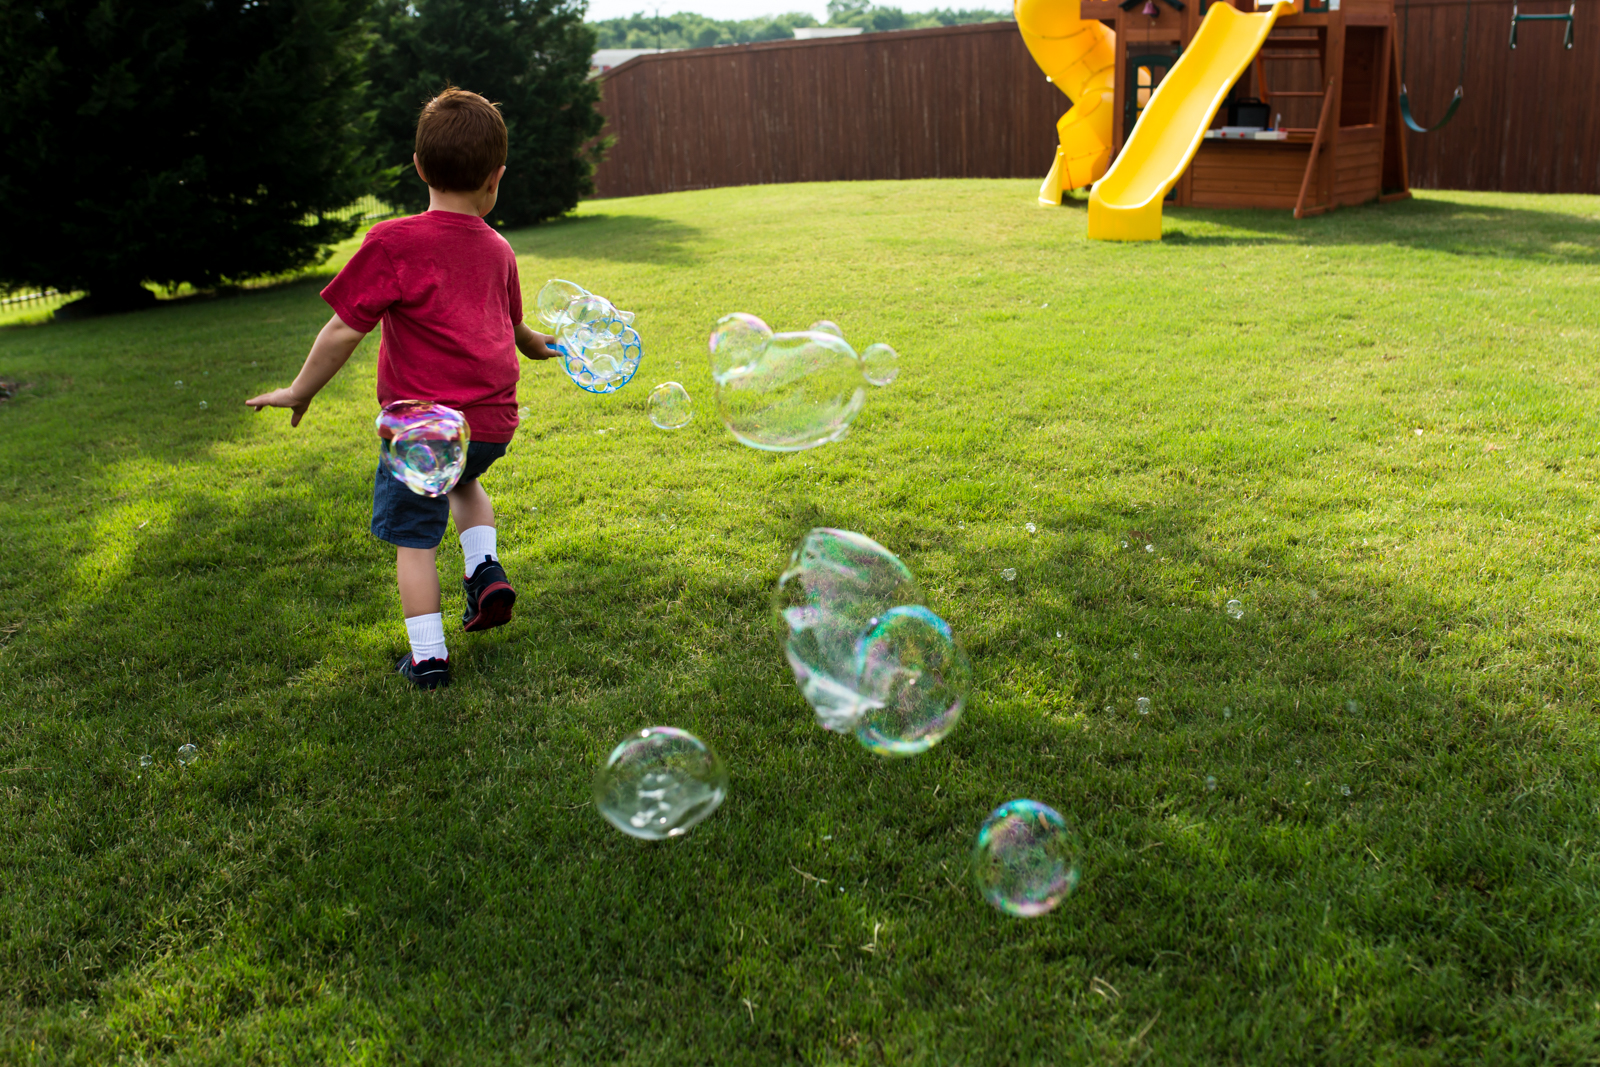 Lawren Rose Photography captures a photo of a red headed little boy running in the bright green grass with giant bubbles flowing behind him in McKinney Texas